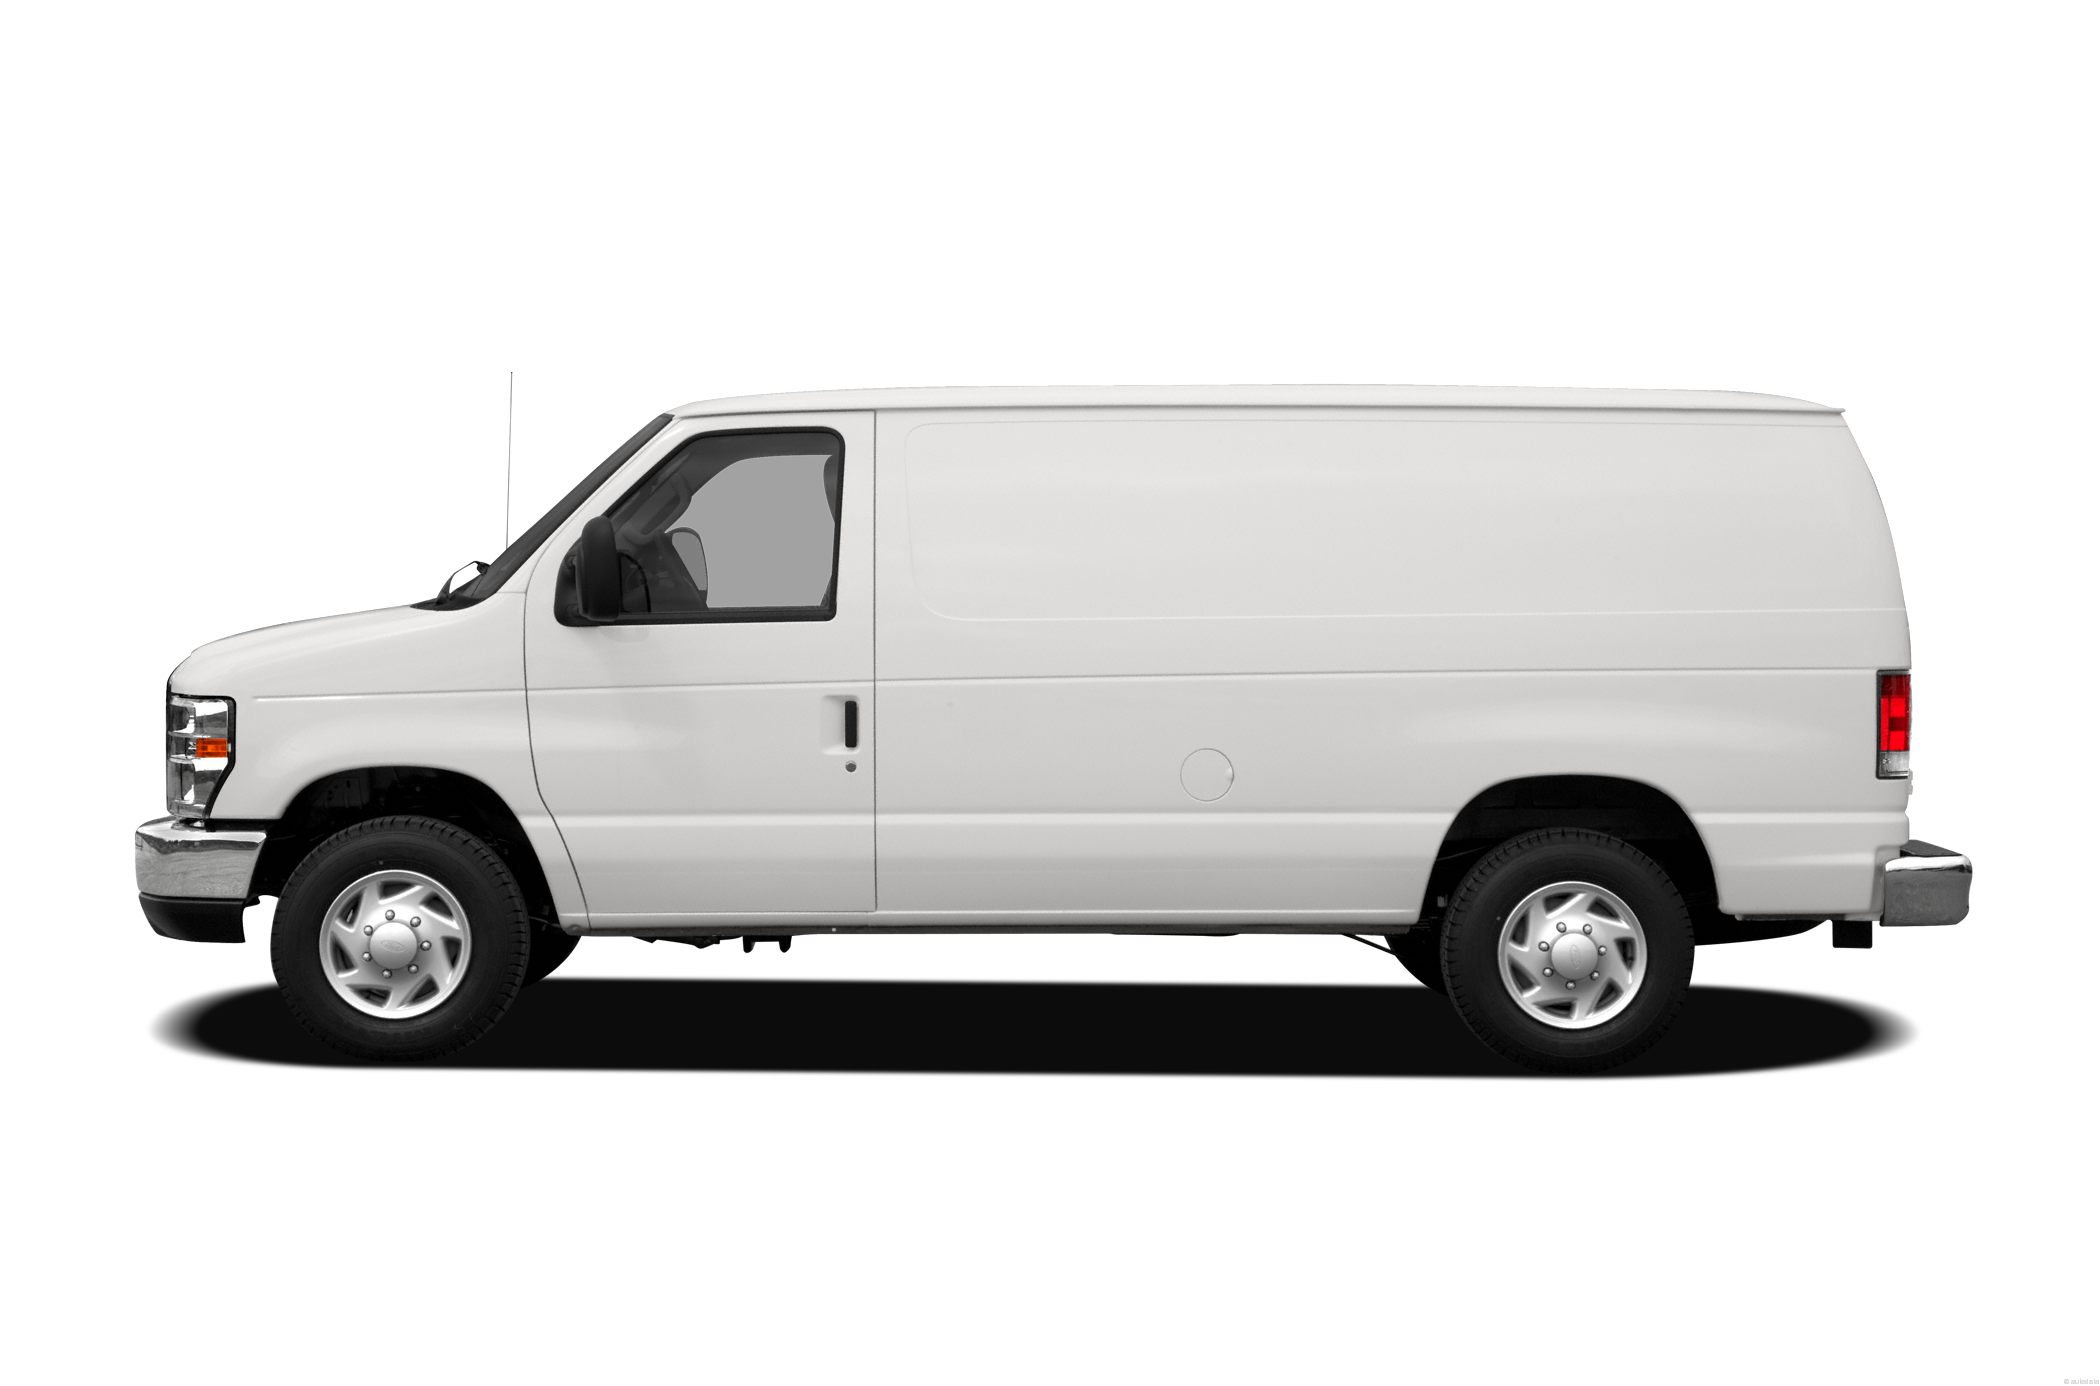 2012 Ford E-series Van #7